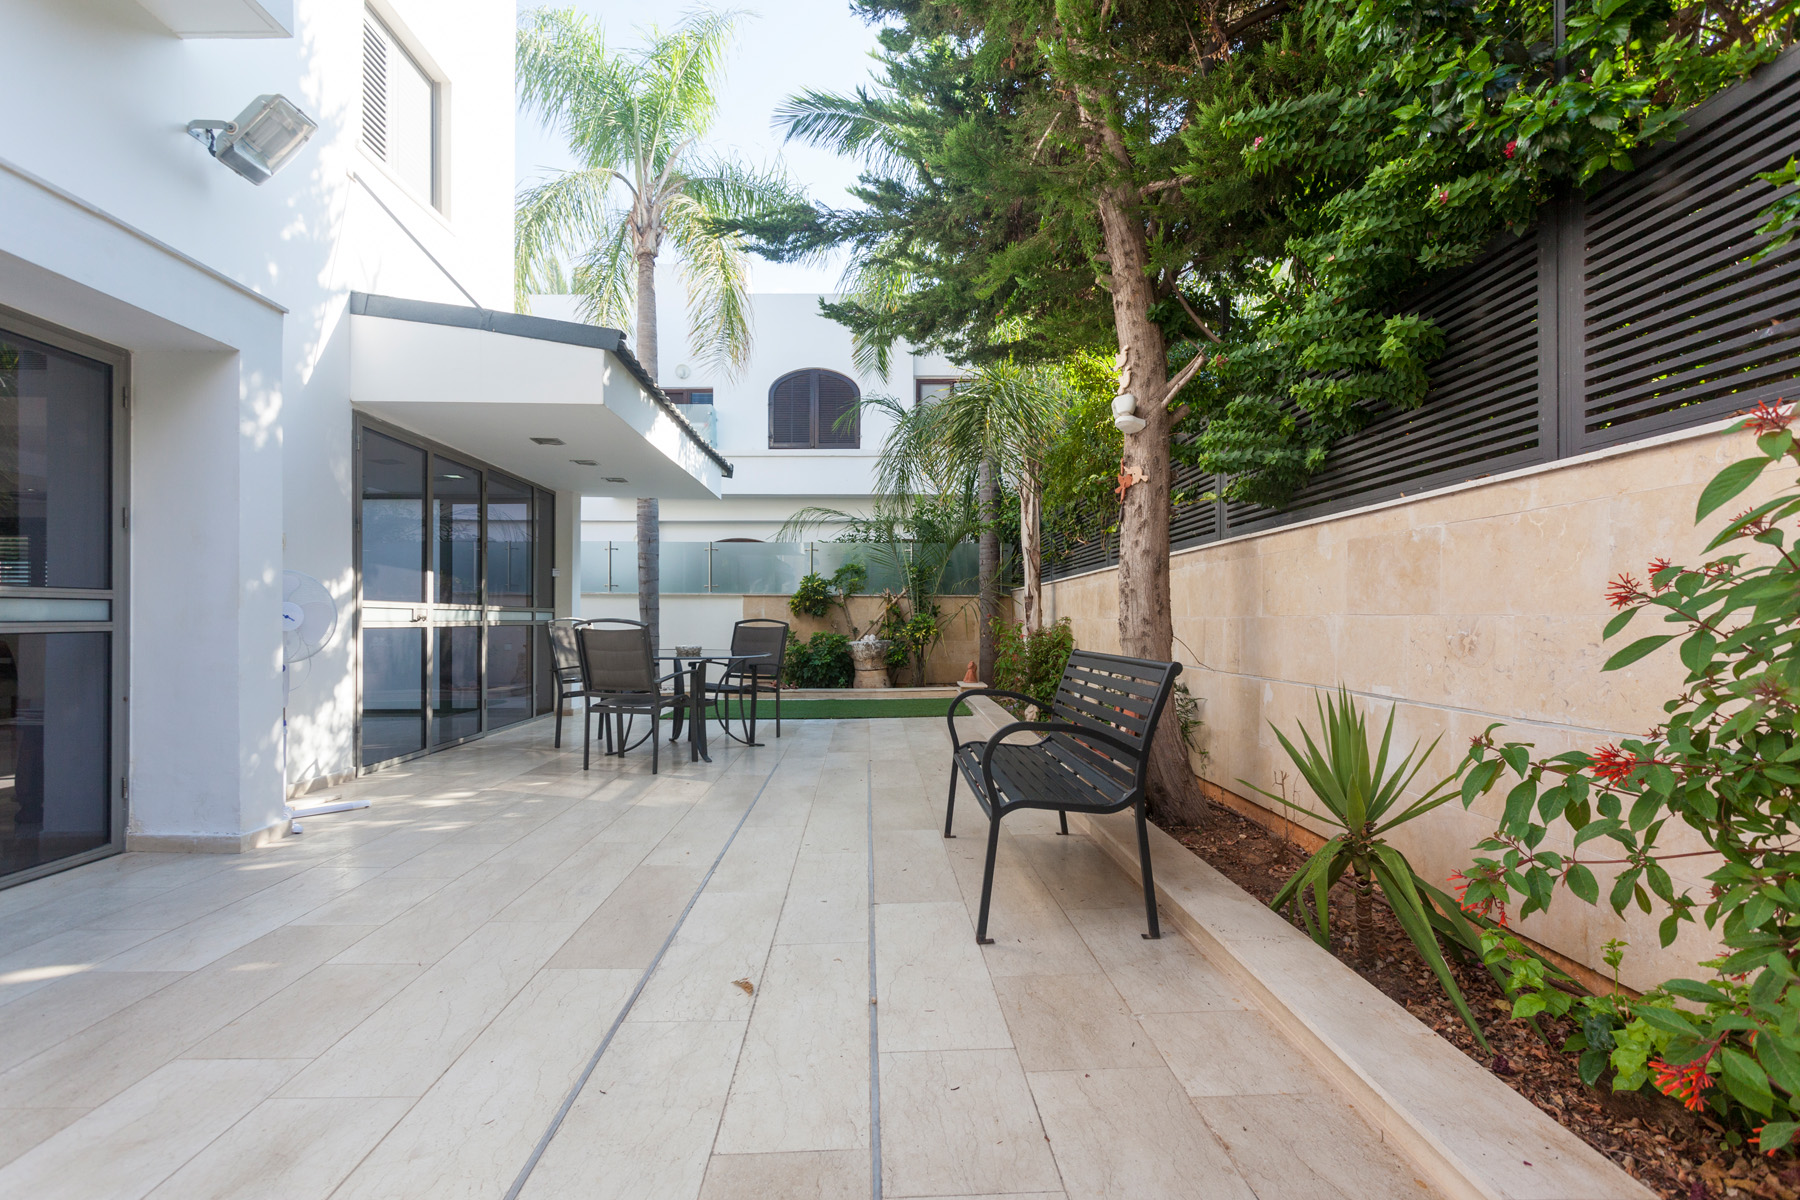 Additional photo for property listing at Contemporary Elegant Villa in Herzliya Pituach Herzliya Pituach, Israel Israel